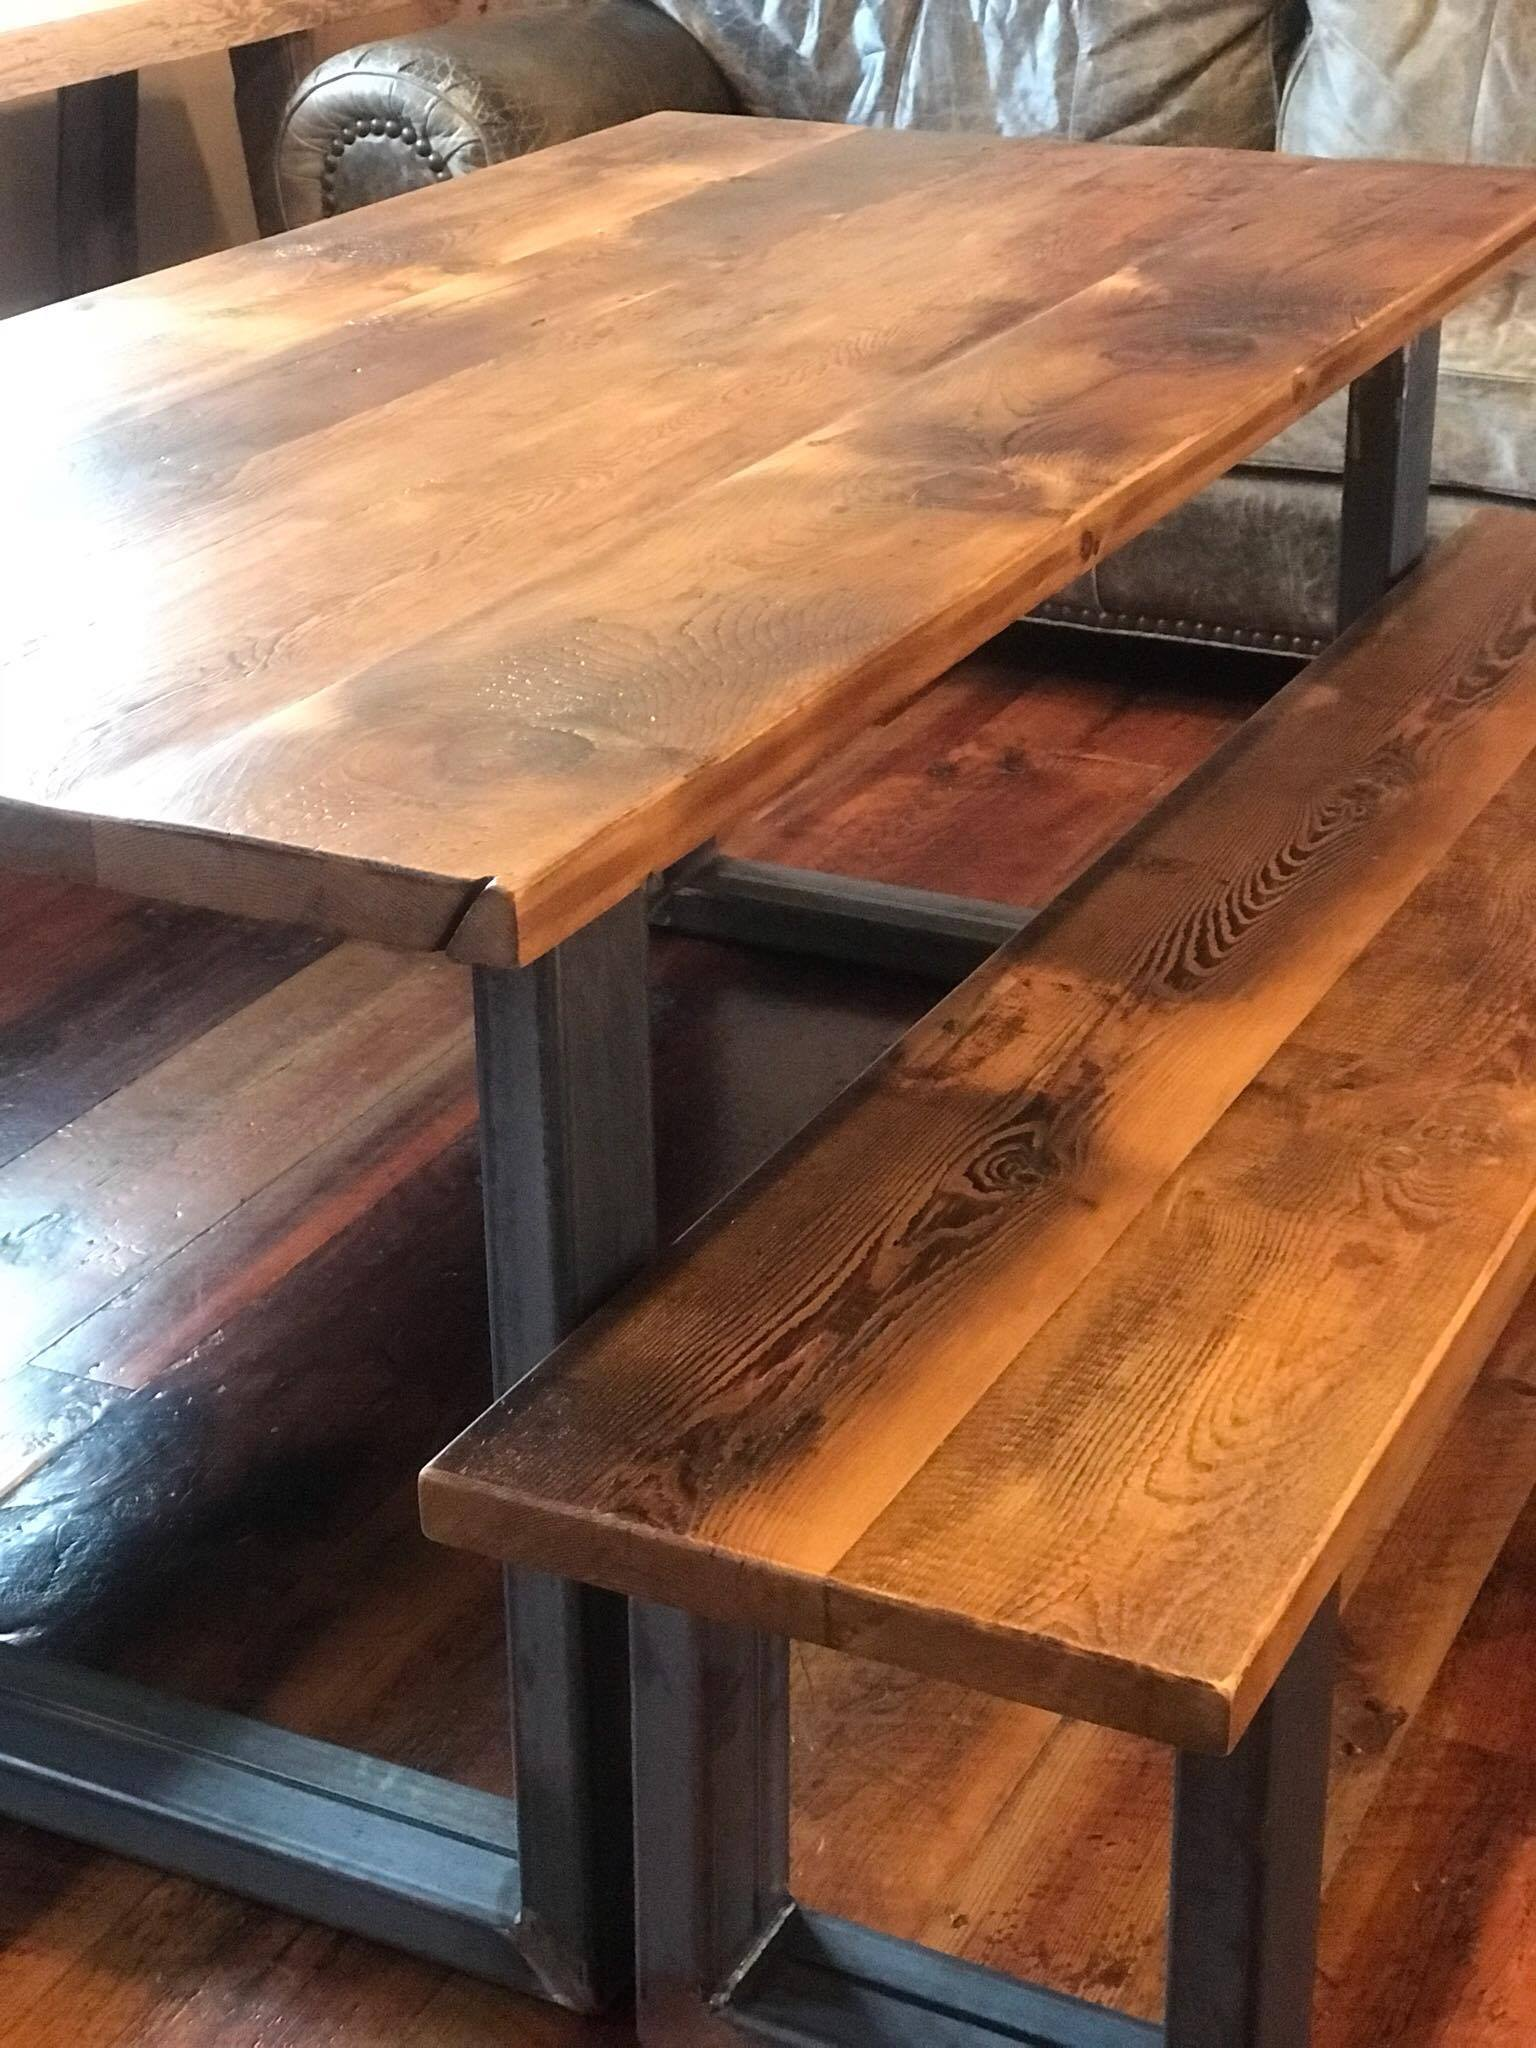 Outstanding Reclaimed Wood Plank Tables And Countertops Sylvan Brandt Download Free Architecture Designs Scobabritishbridgeorg